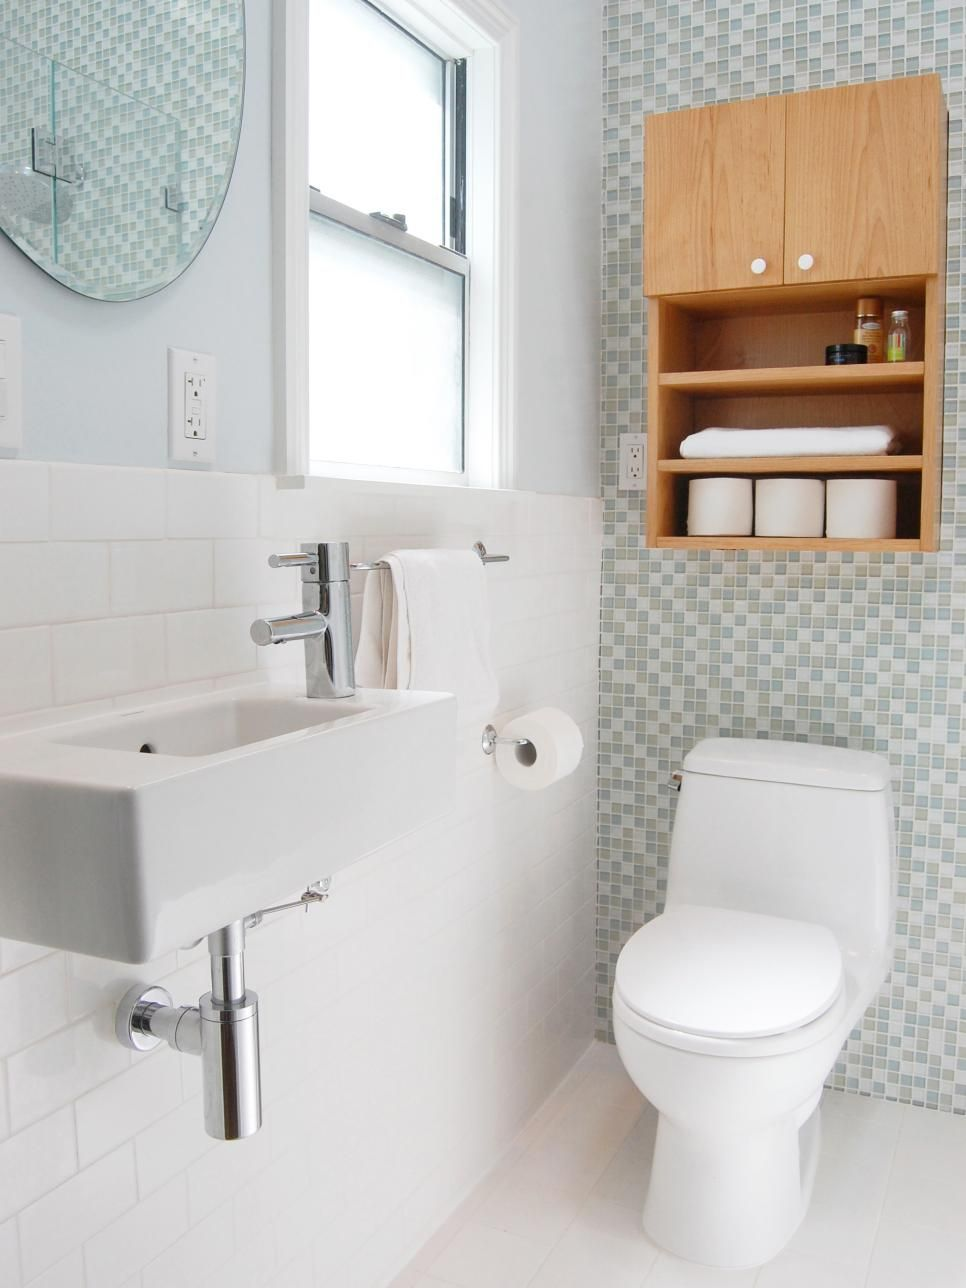 Make The Most Of Your Small Space With Sleek Fixtures And Light Colors This Bathroom Features Traditiona Small Bathroom Layout Bathroom Layout Narrow Bathroom